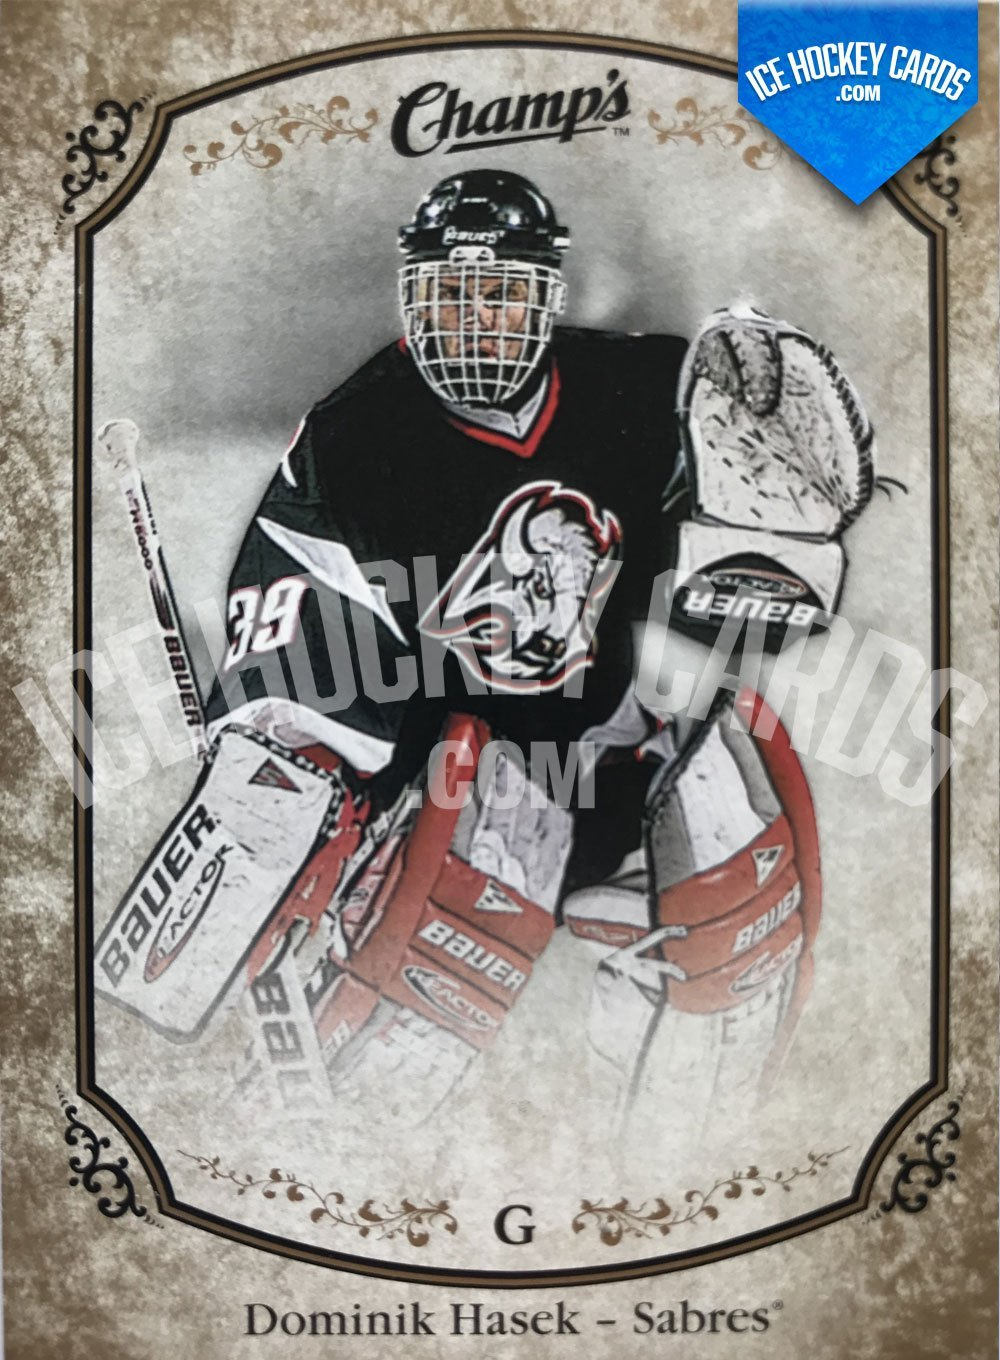 Upper Deck - Champs 15-16 - Dominik Hasek Base Card